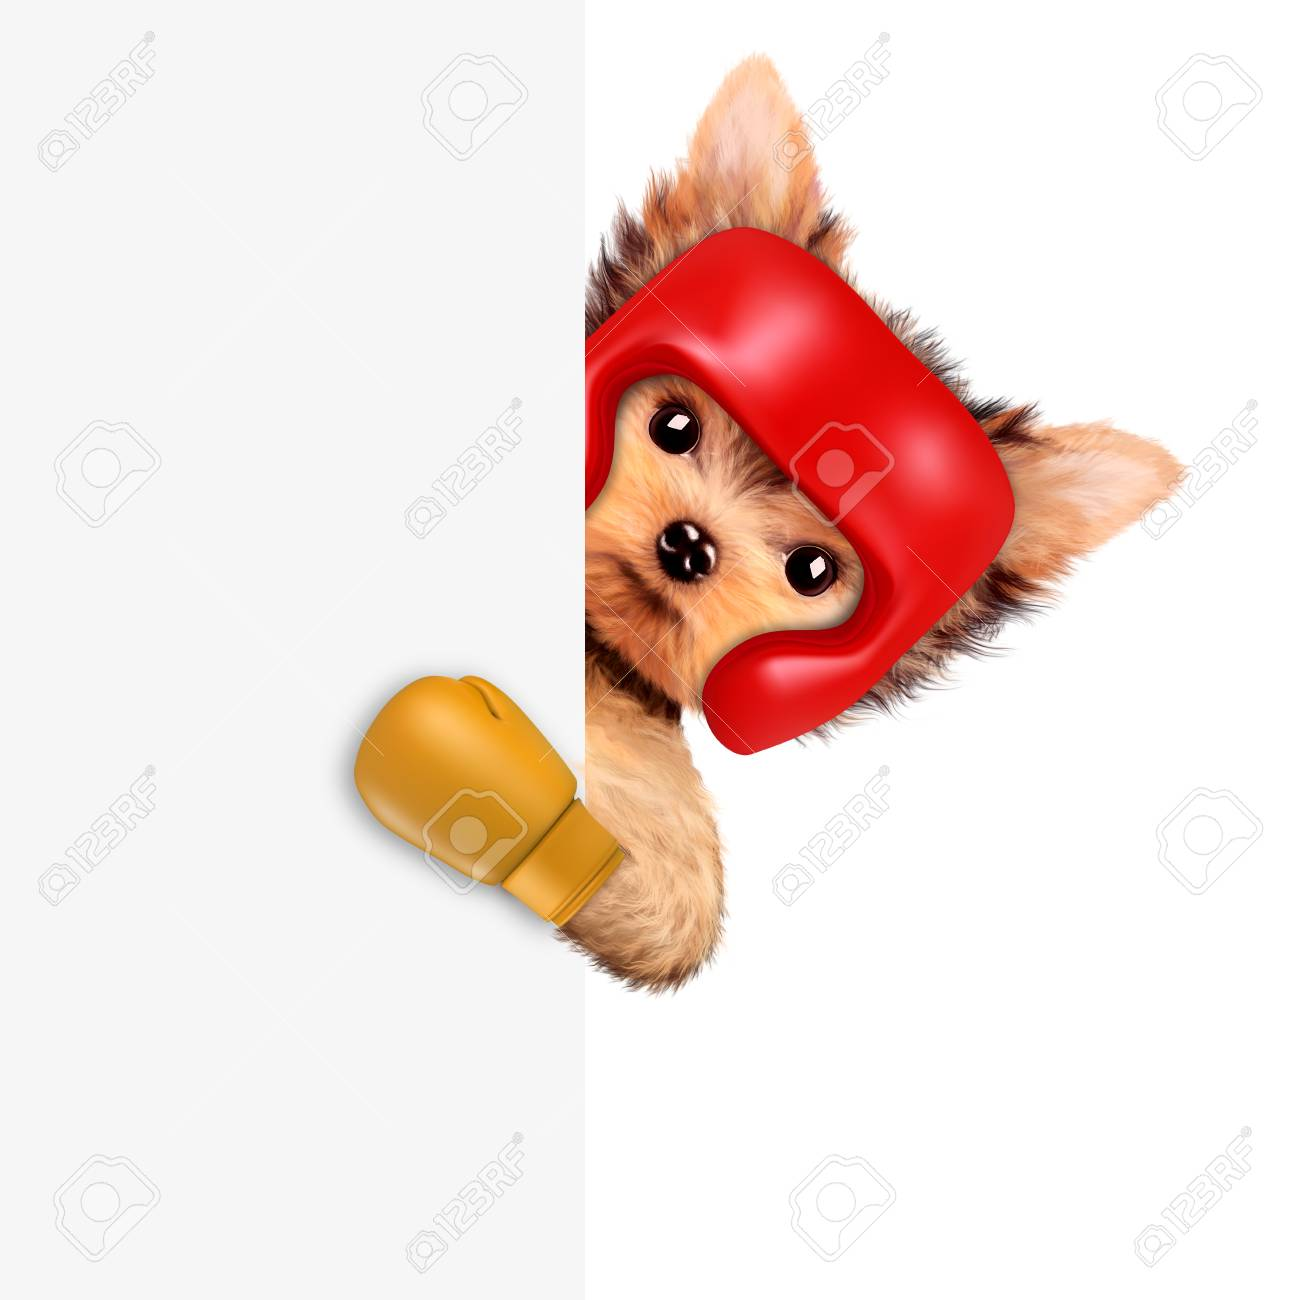 Ssr3a48d12 Spst 048vdc 3a Dc Solid State Relay Circuit Diagram Squirrel Wearing Boxing Gloves Wiring Diagrams Funny Dog Helmet And Stock Photo Picture Rh 123rf Com Female